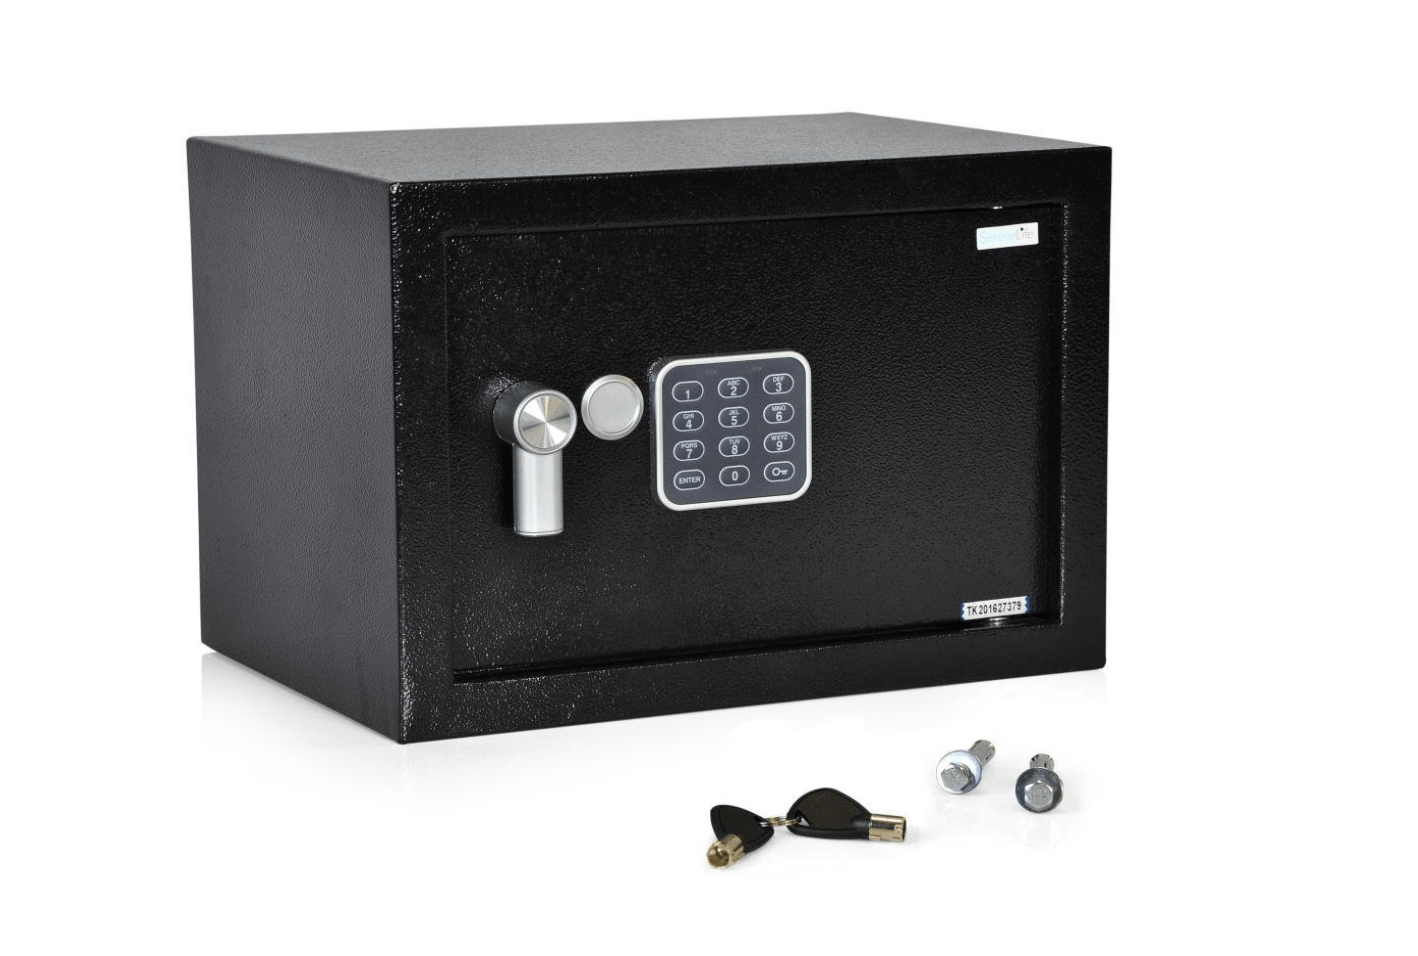 SereneLife Fireproof SafeBox Black Friday